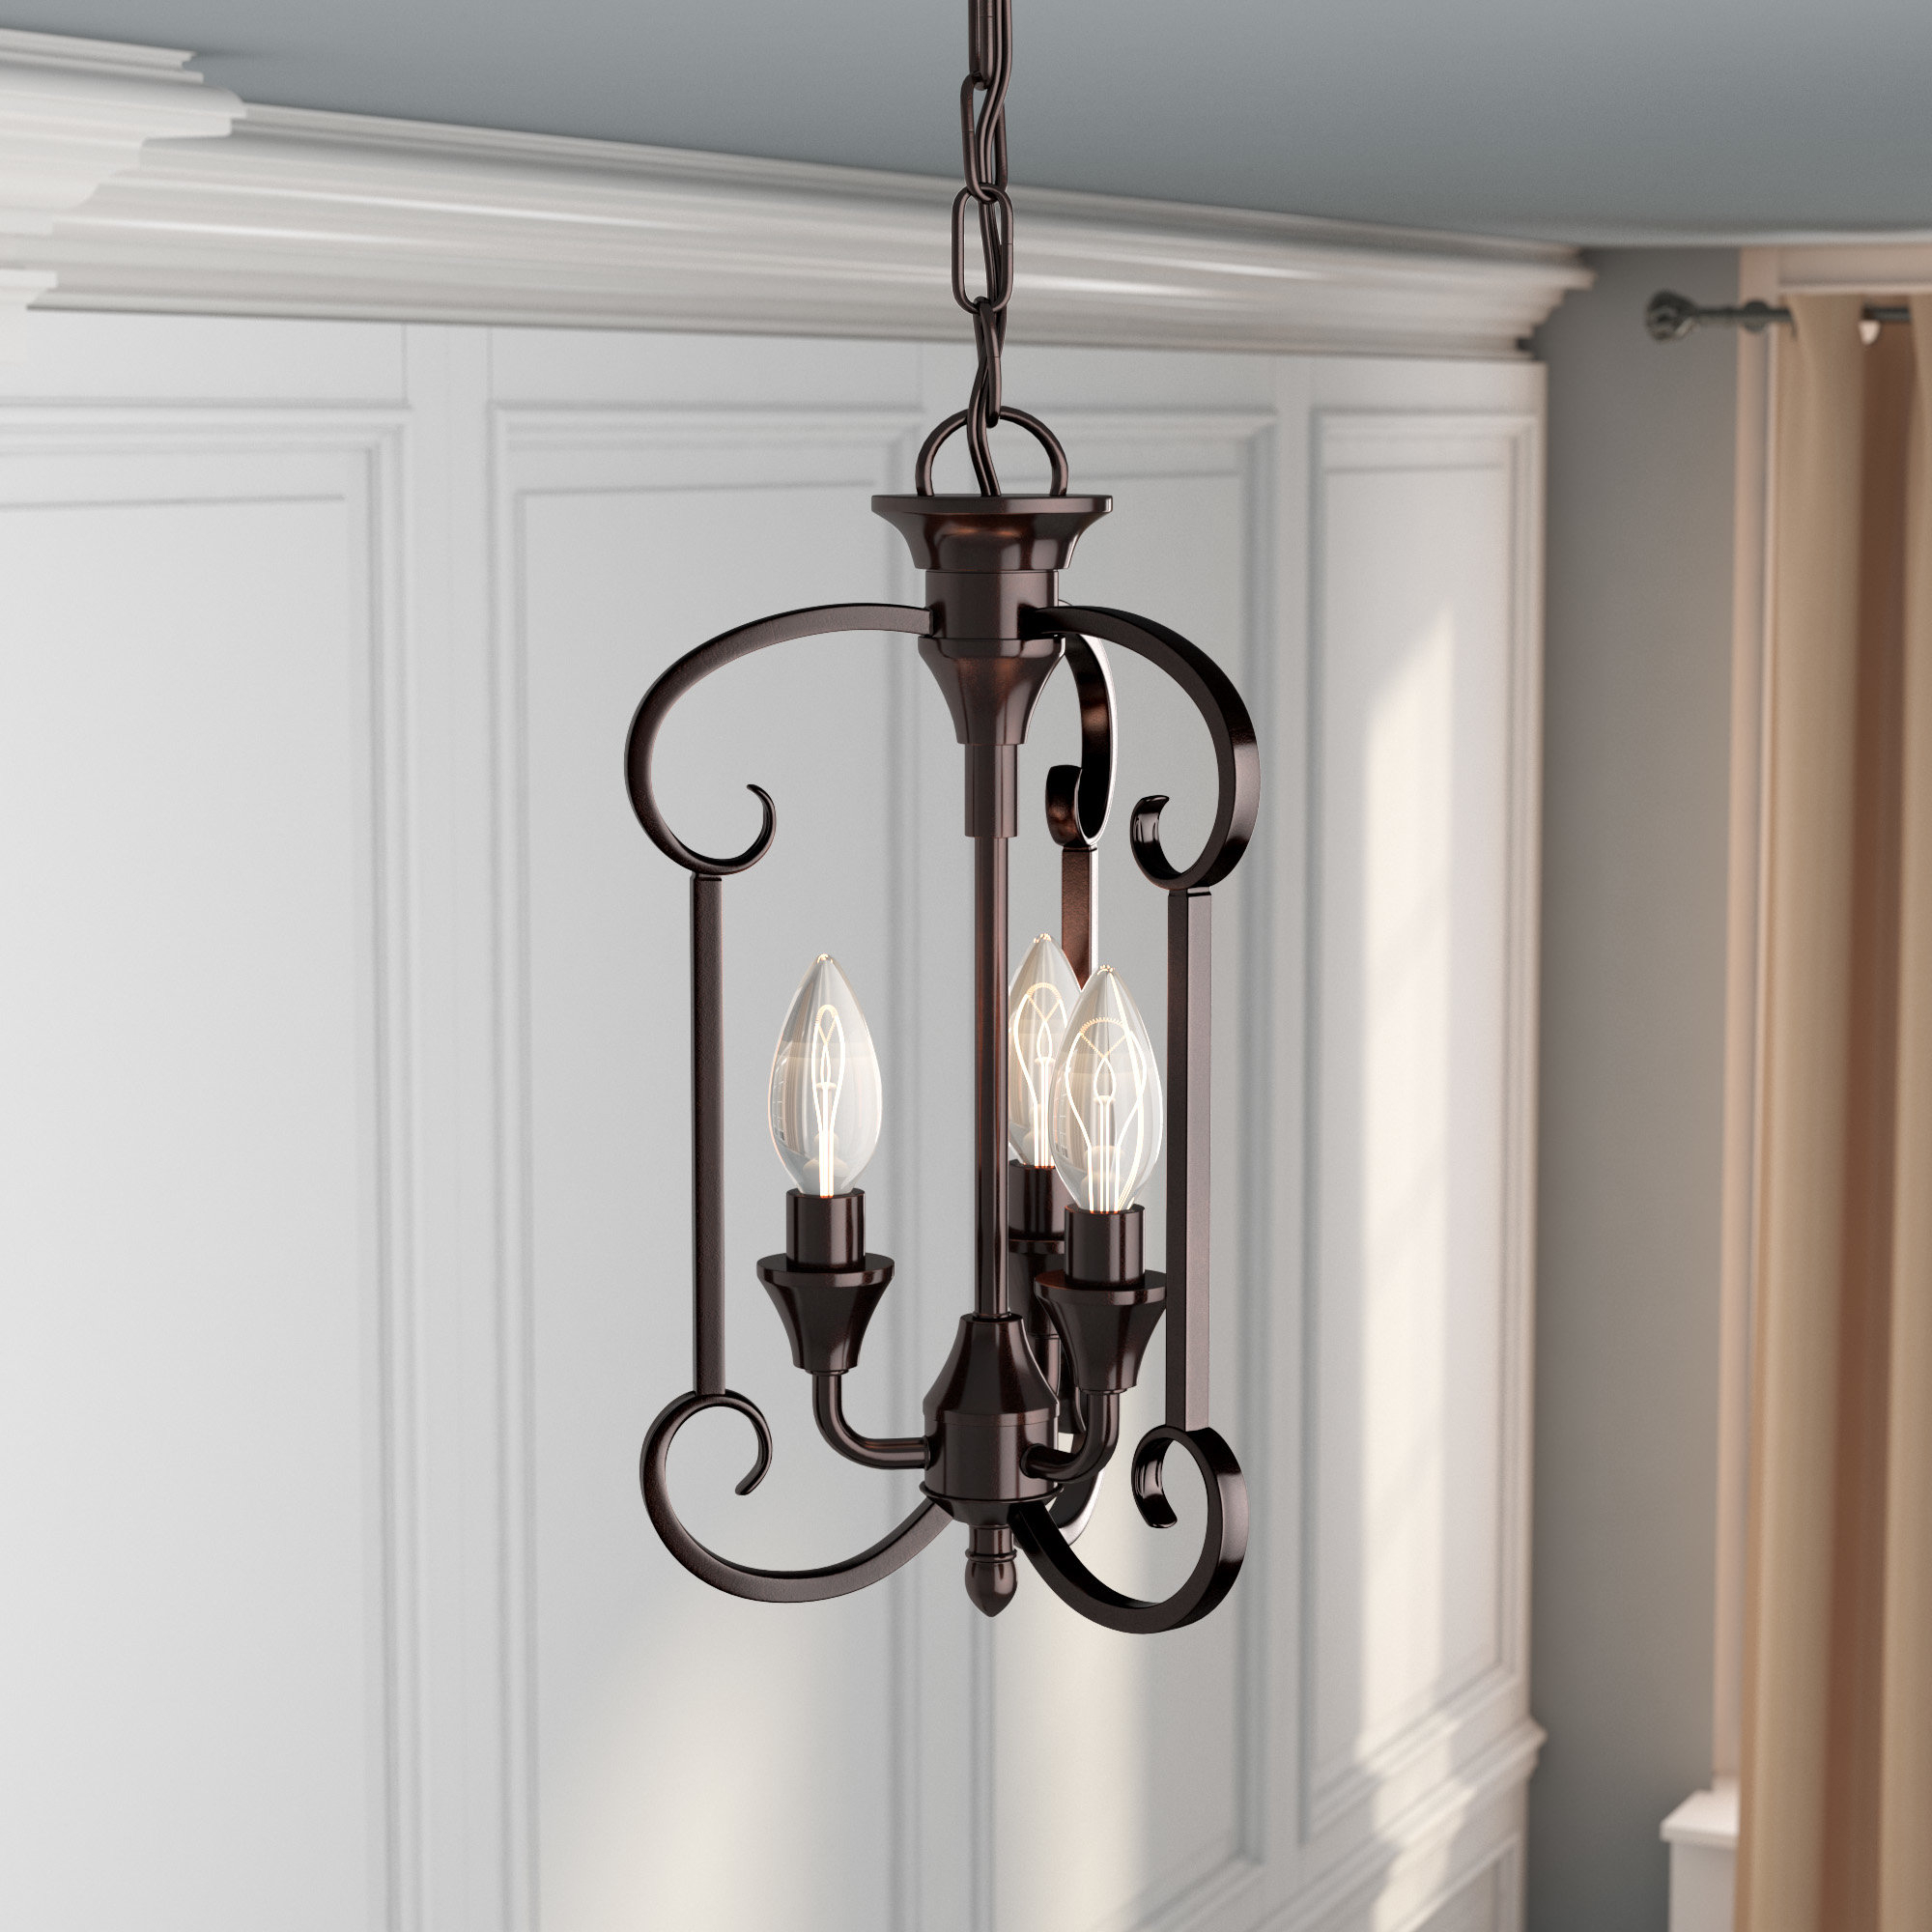 Most Current Van Horne 3 Light Single Teardrop Pendants Regarding Warner Robins 3 Light Lantern Pendant (View 13 of 25)